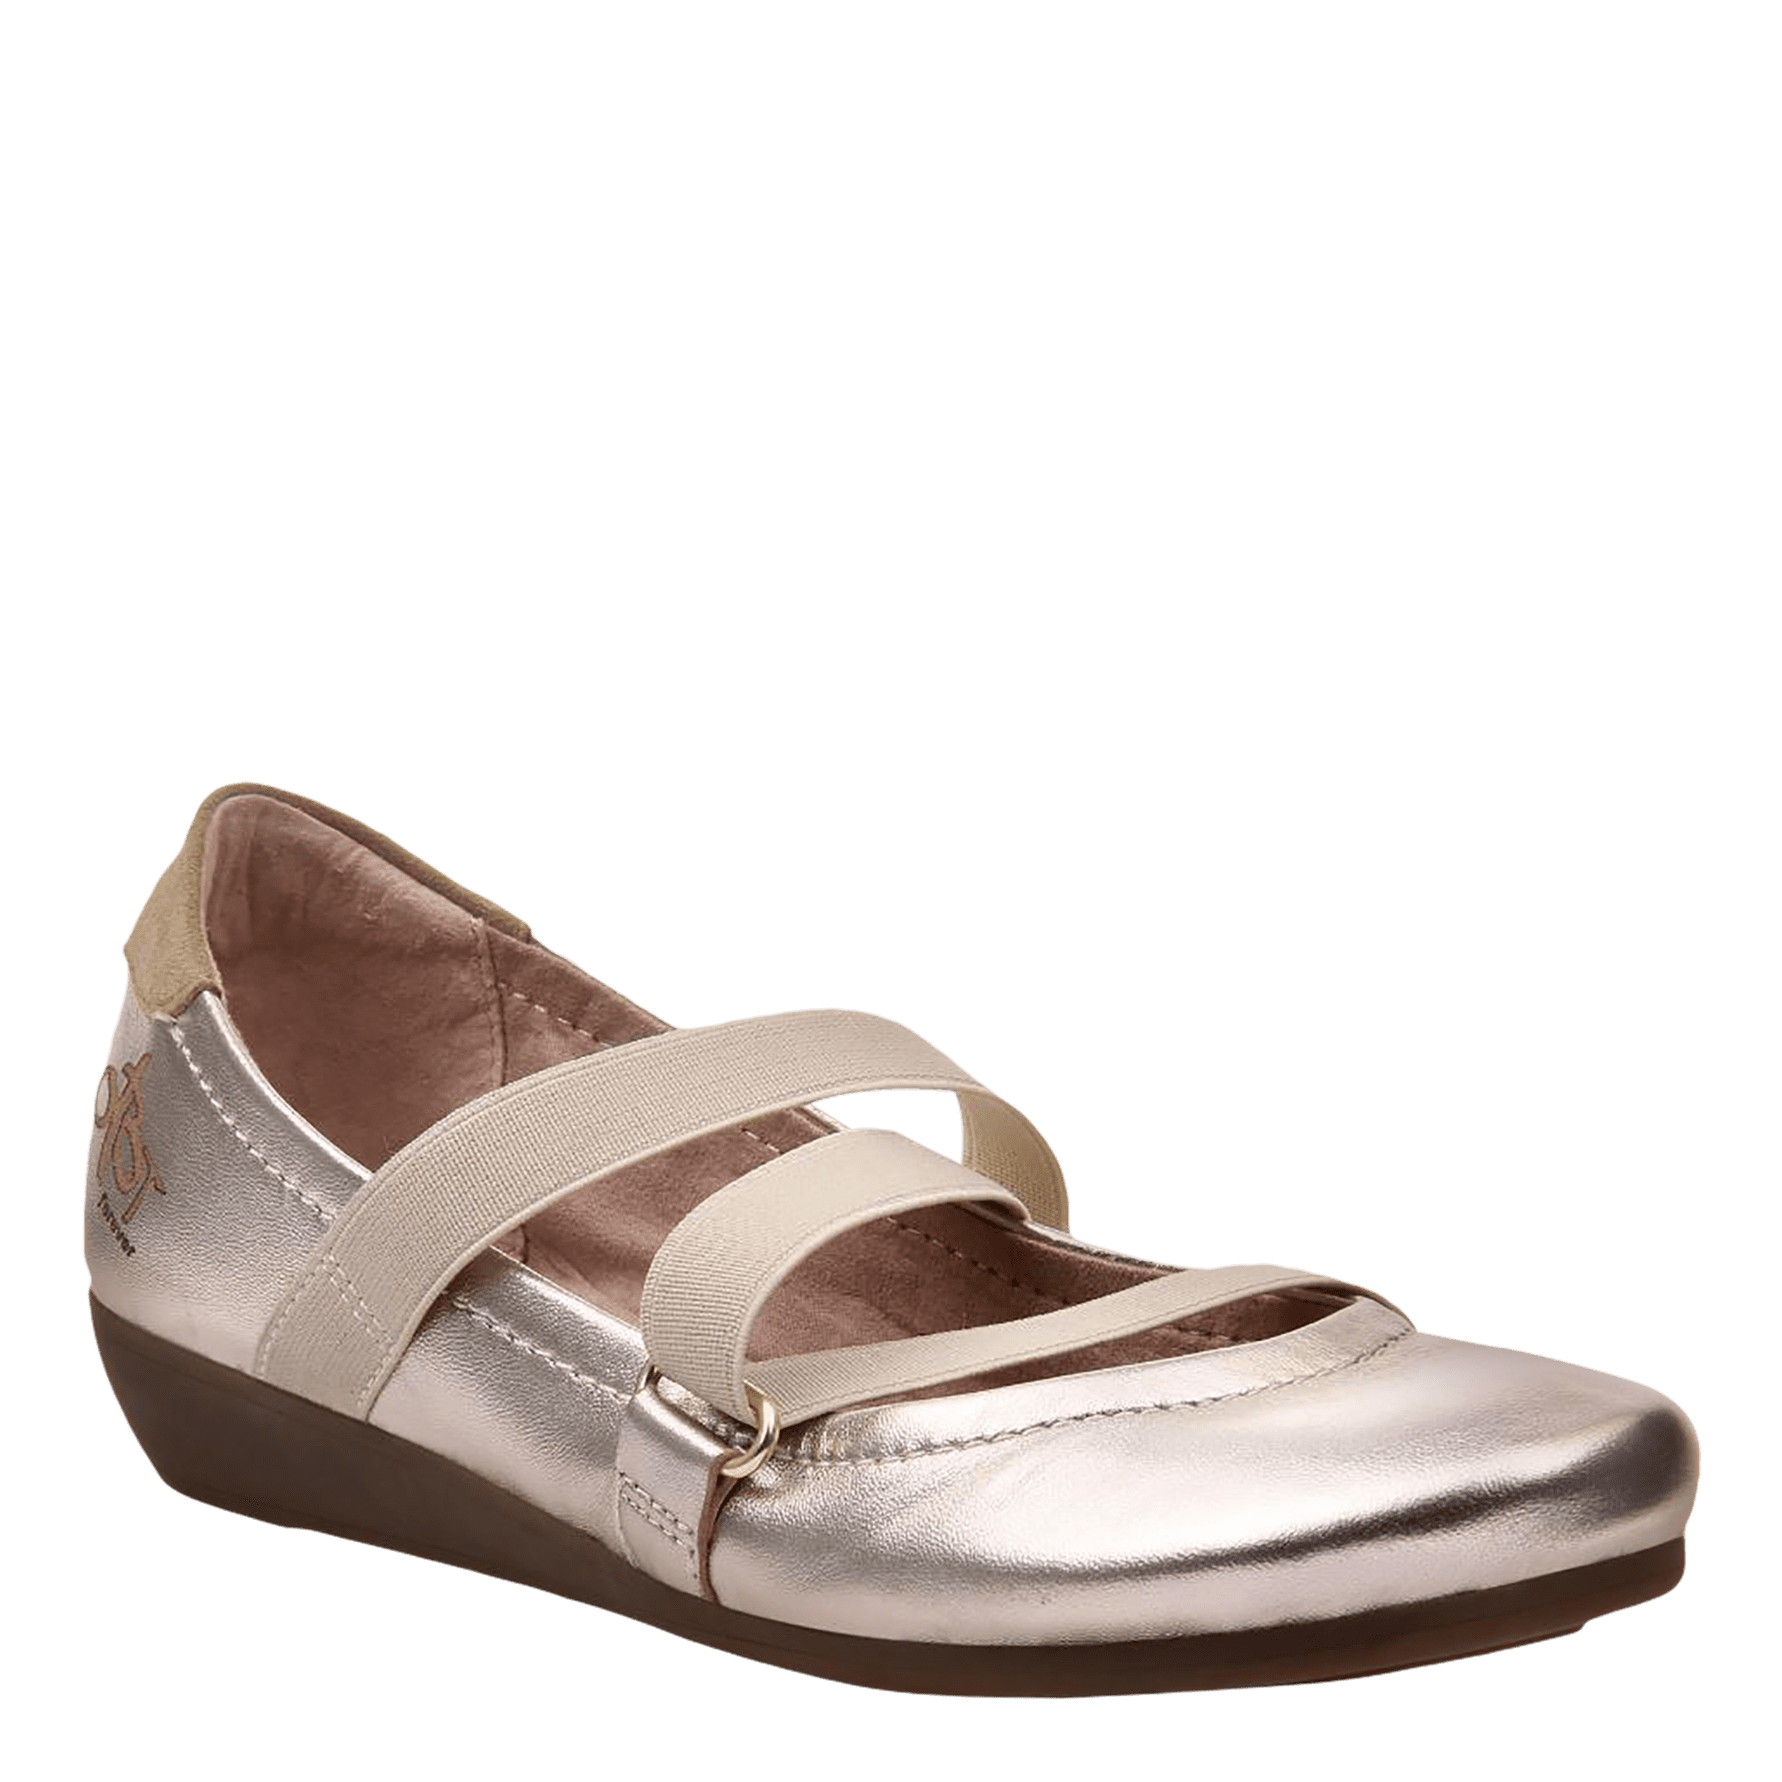 Womens ballet flat anora in old gold